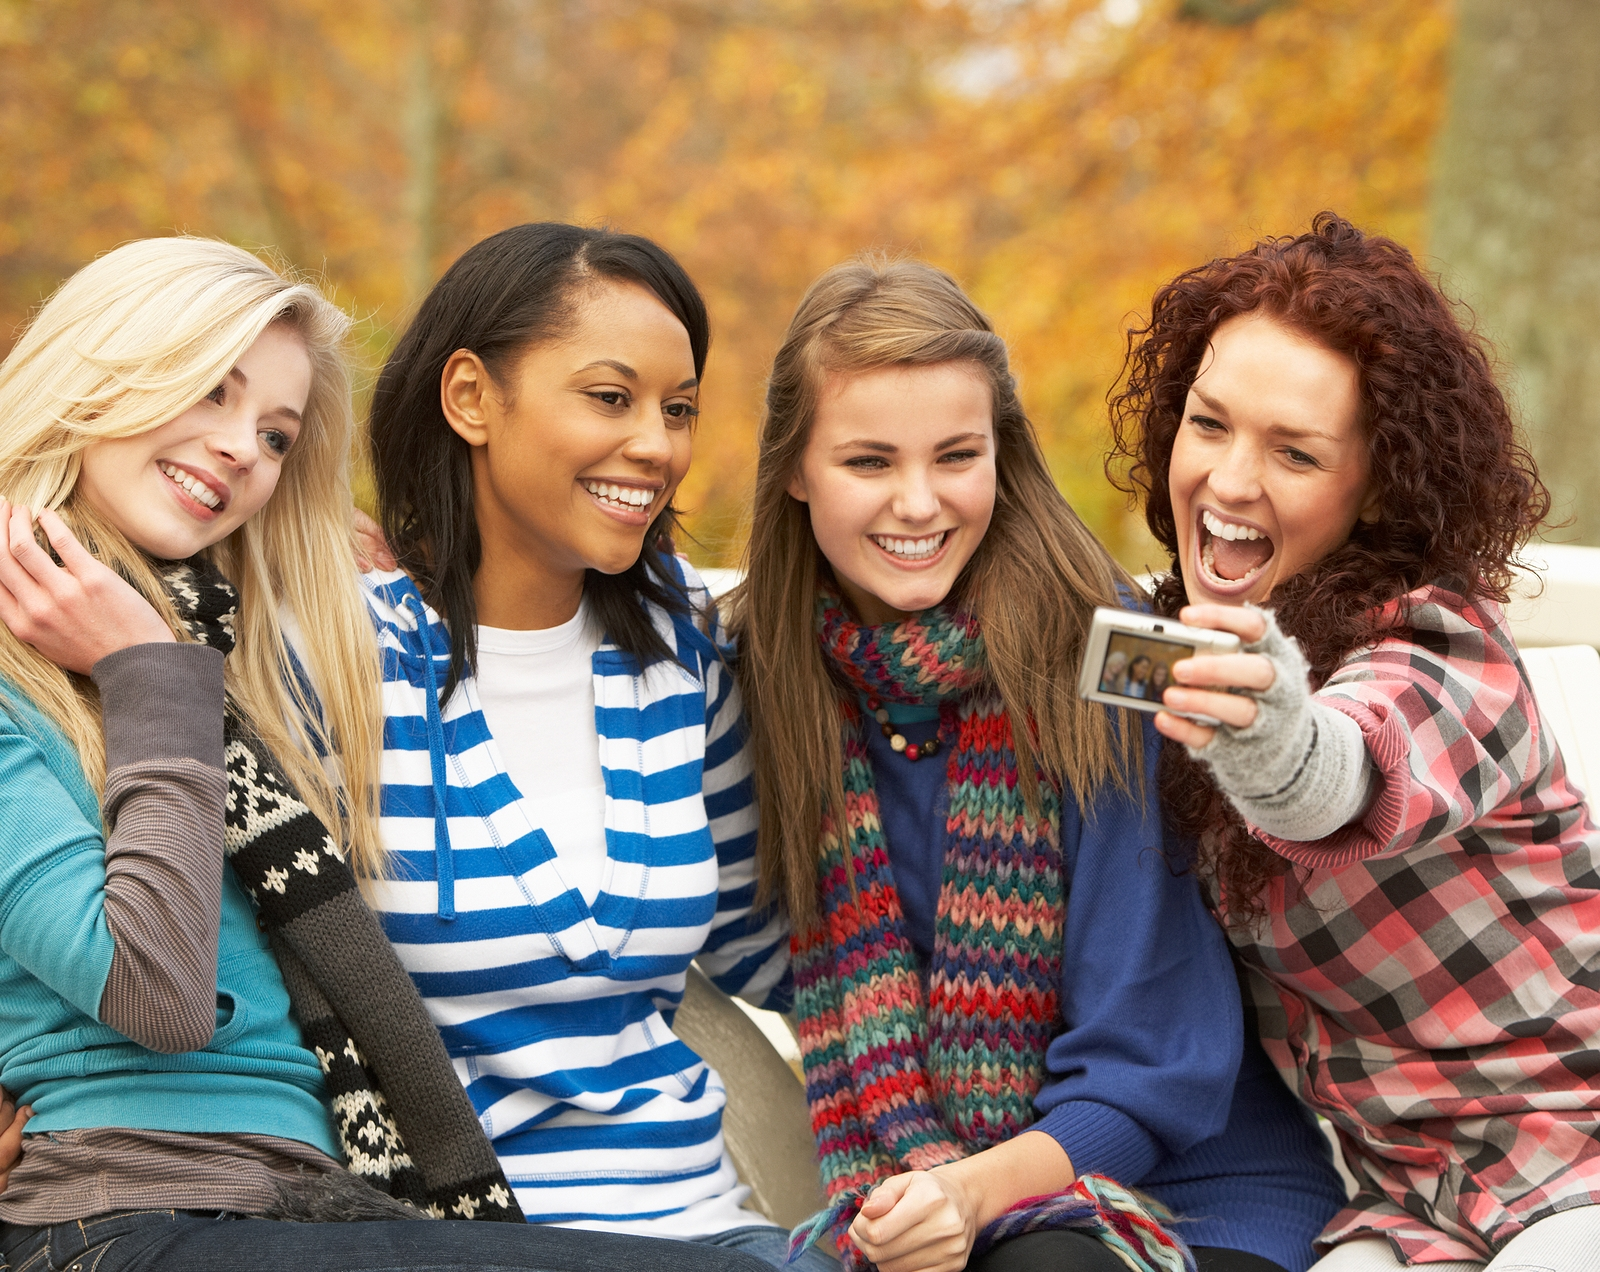 Four high school girls smile as they take a selfie with a camera in an autumn park. They are feeling more kind and inviting after group therapy for teen girls in west bloomfield, mi. Therapyology offers group therapy for teenagers in west bloomfield, mi, adolescent group therapy in west bloomfield, mi and more. Contact us today!